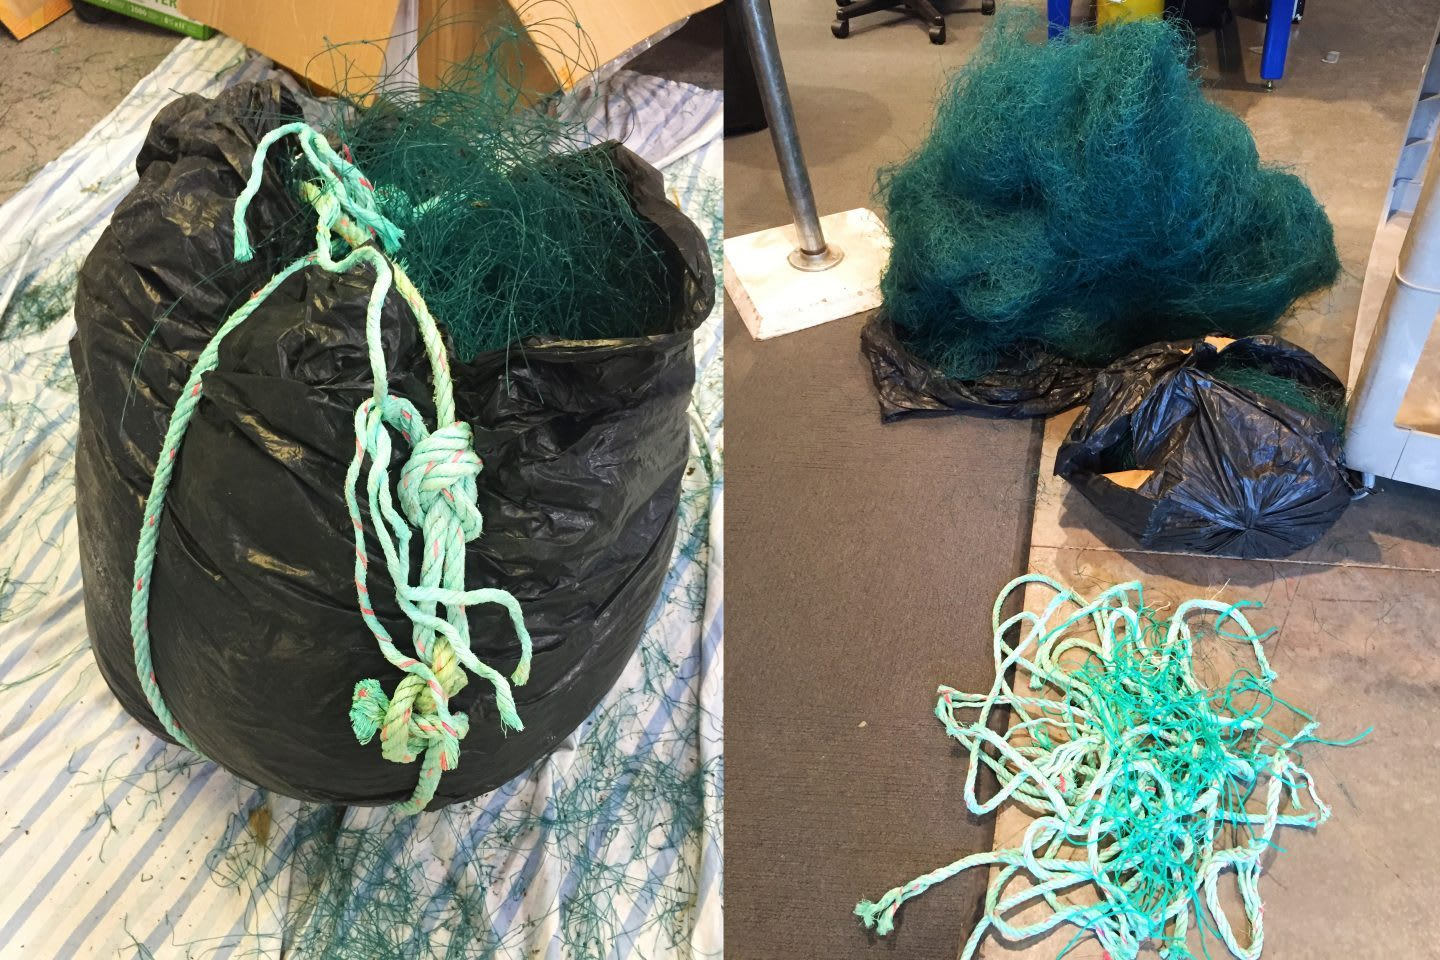 Old ocean nets in trash bags, materials, sustainability, adidas, innovation